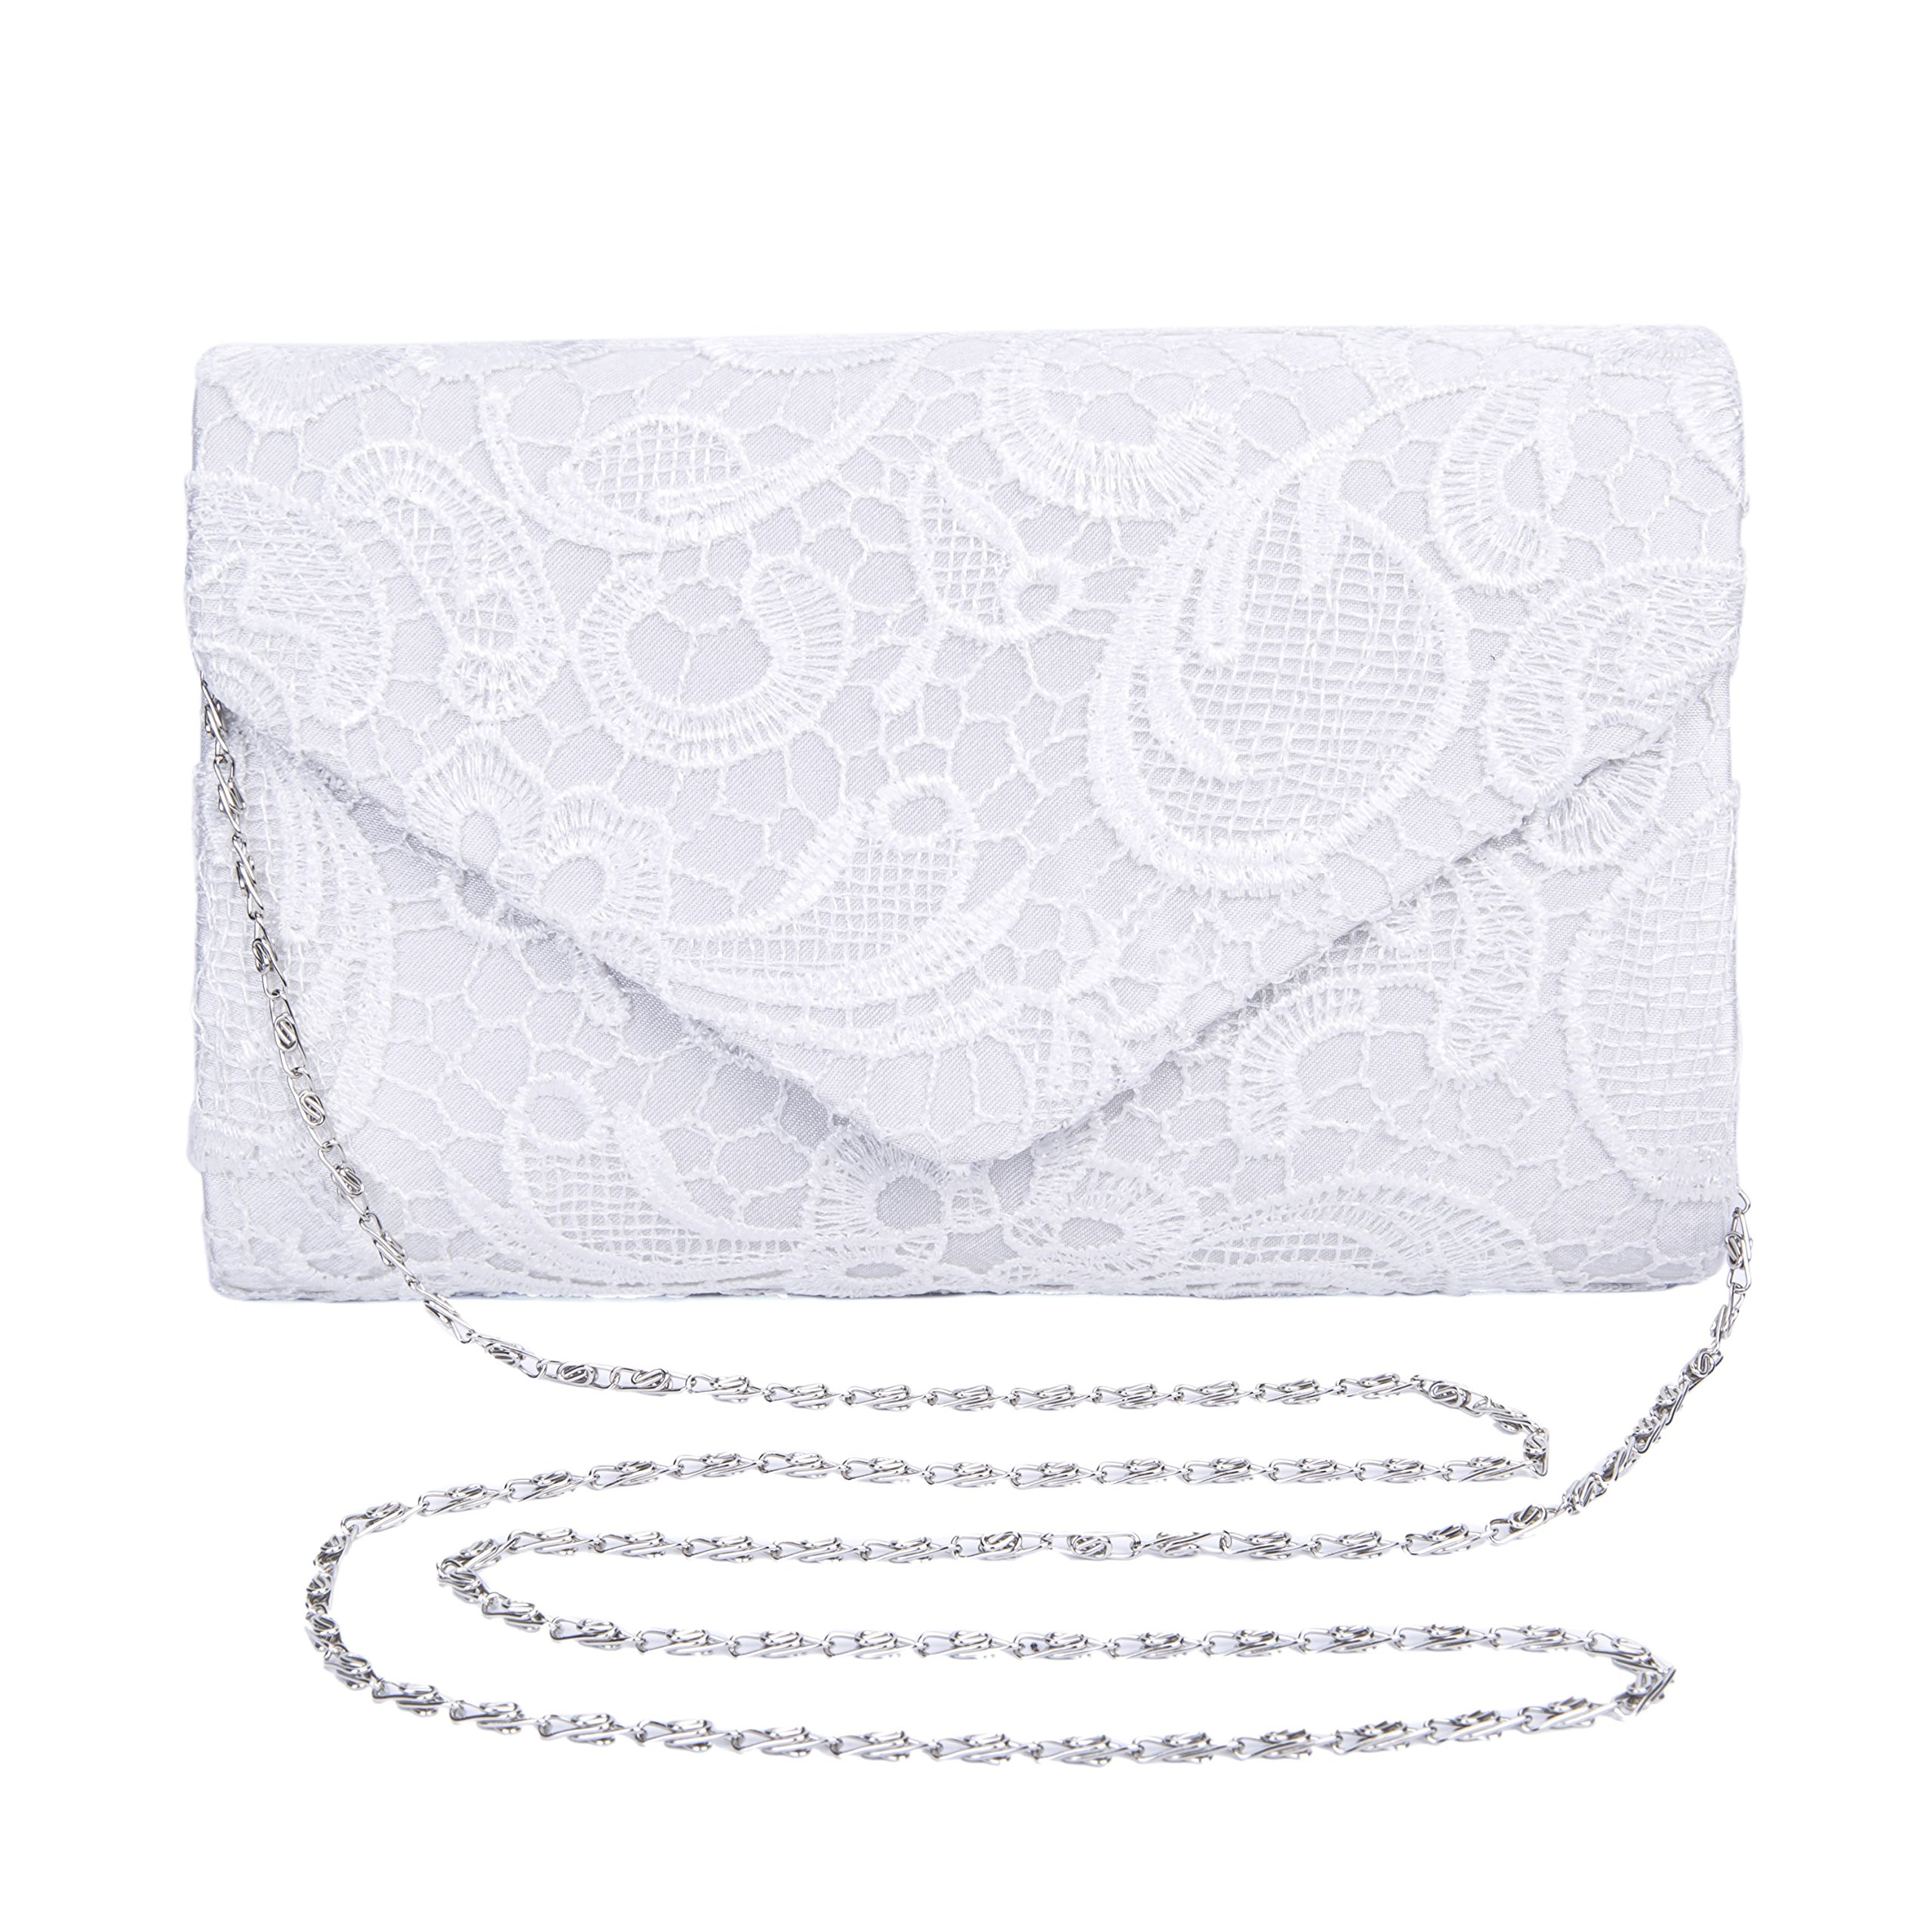 Kaever Womens Lace Floral Evening Clutch Envelope Clutch Purses for Wedding and Party (White)